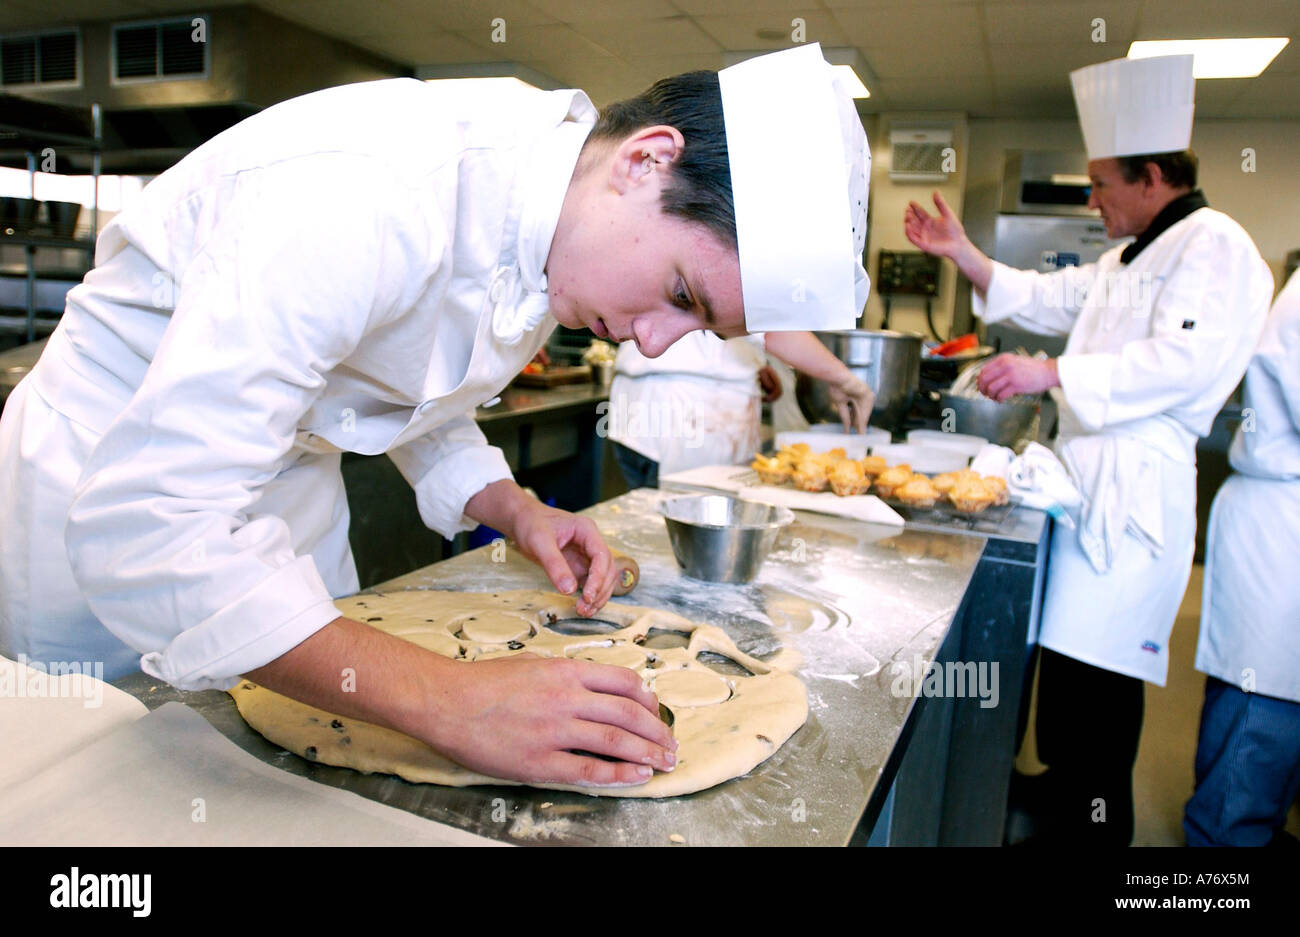 Young man studying catering makes pastry in a class in a modern kitchen Stock Photo